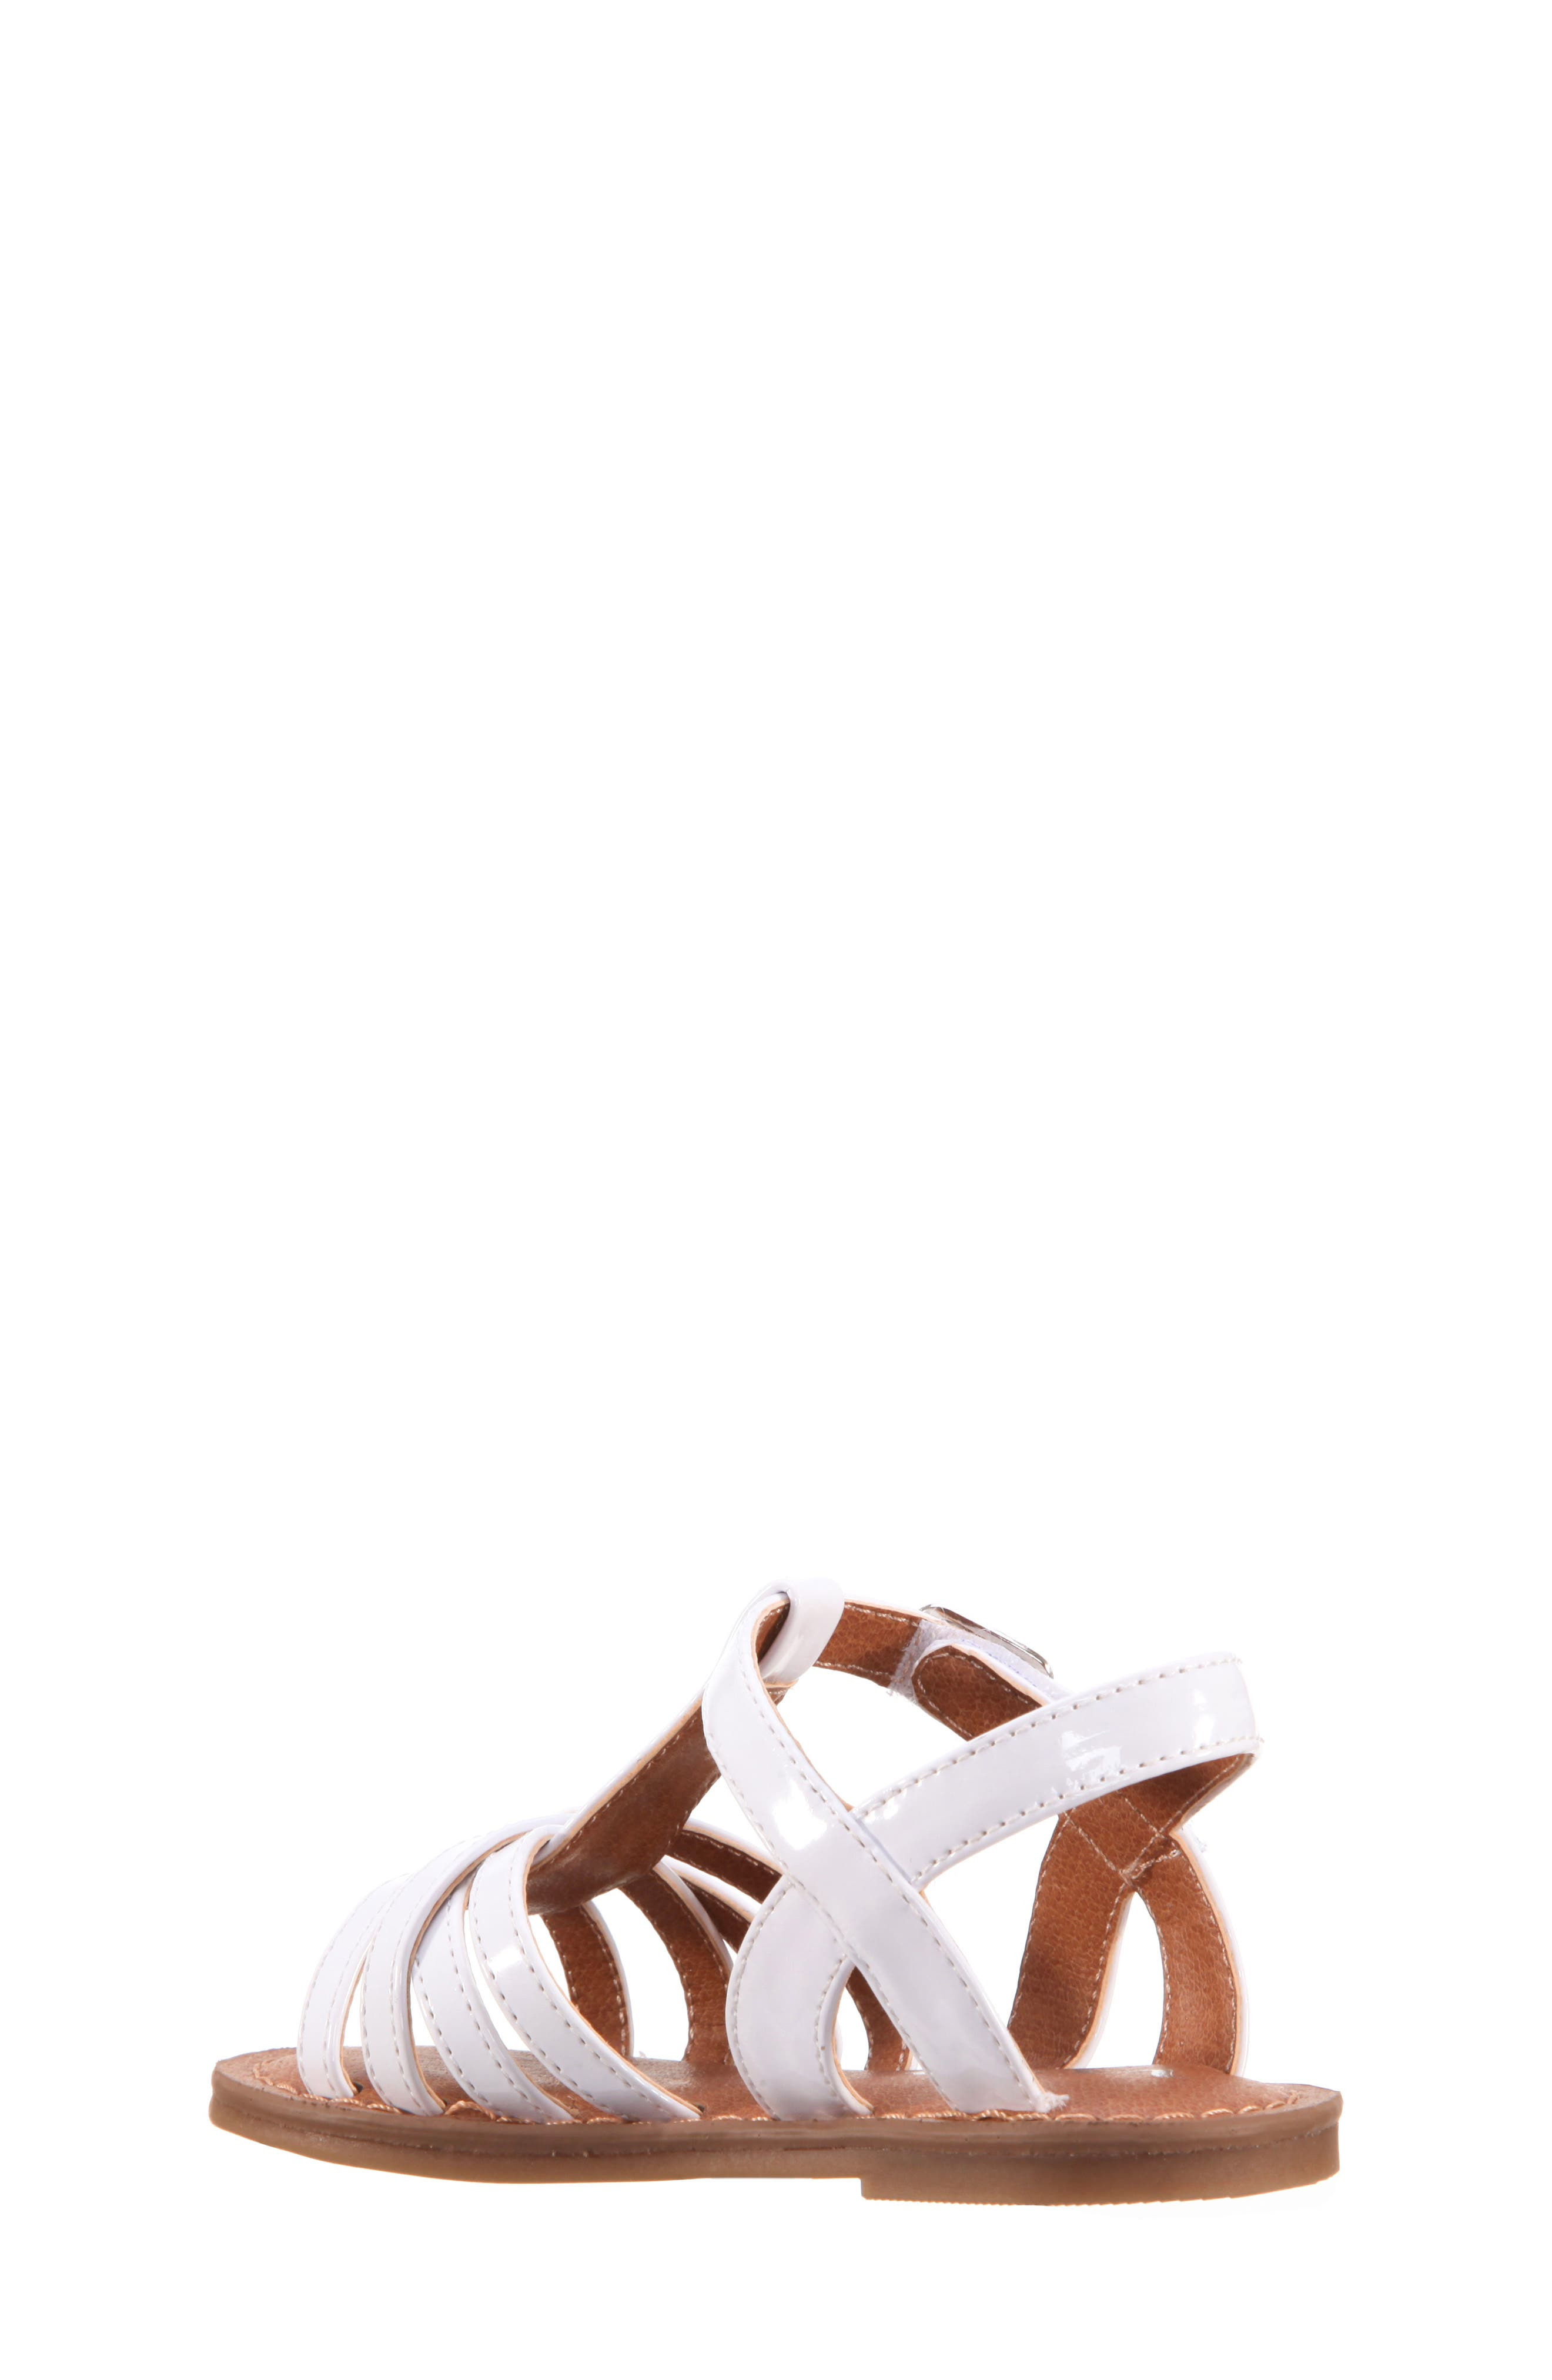 Thereasa Ankle Strap Sandal,                             Alternate thumbnail 2, color,                             White Patent